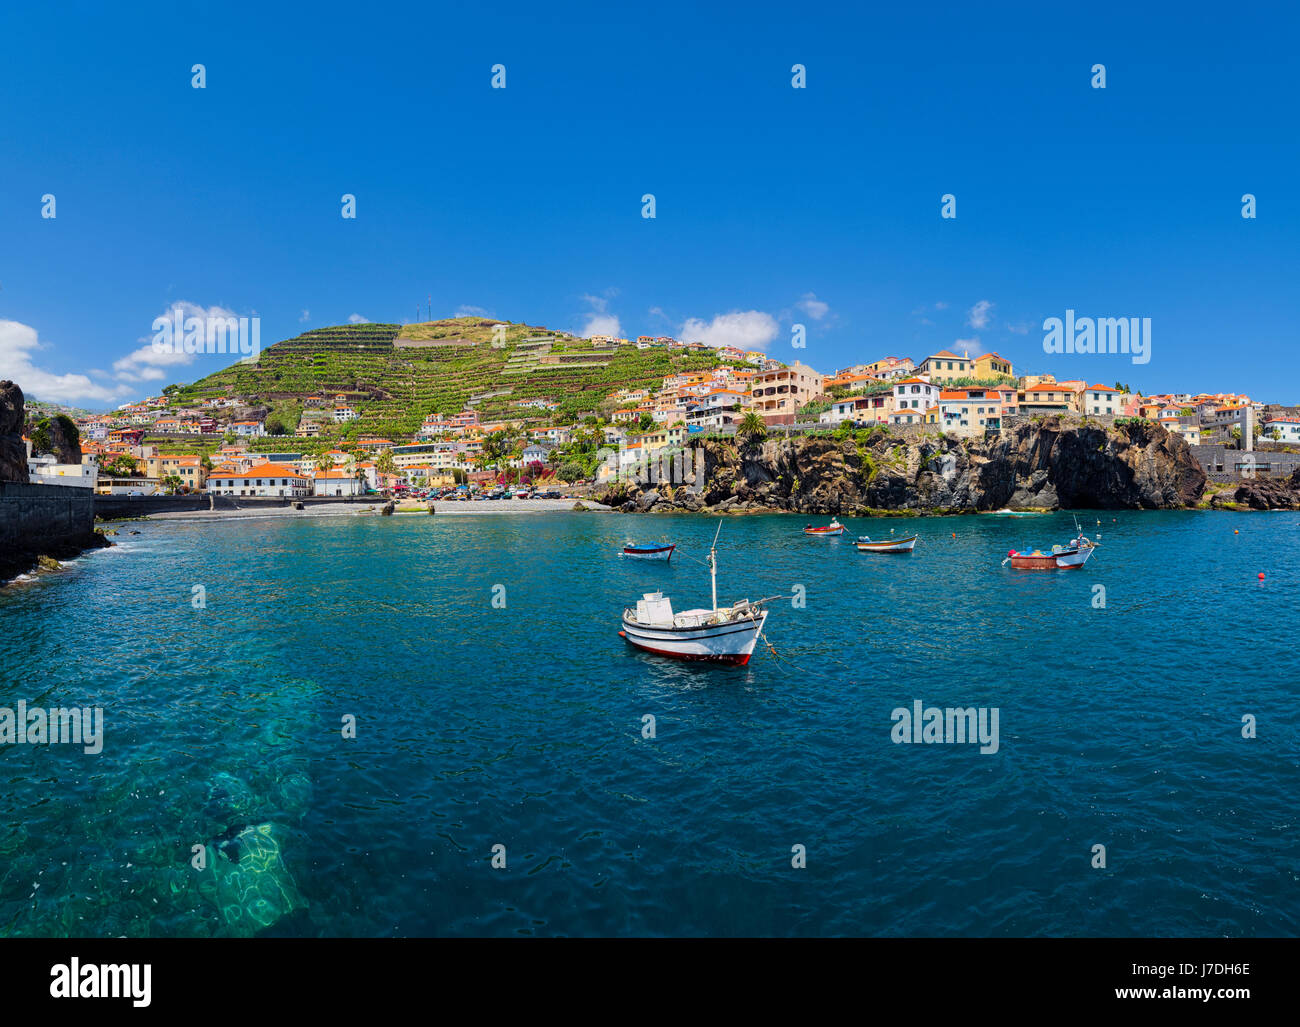 Camara De Lobos - a picturesque fishing on the south-central coast of the island of Madeira. Said to be the birthplace - Stock Image